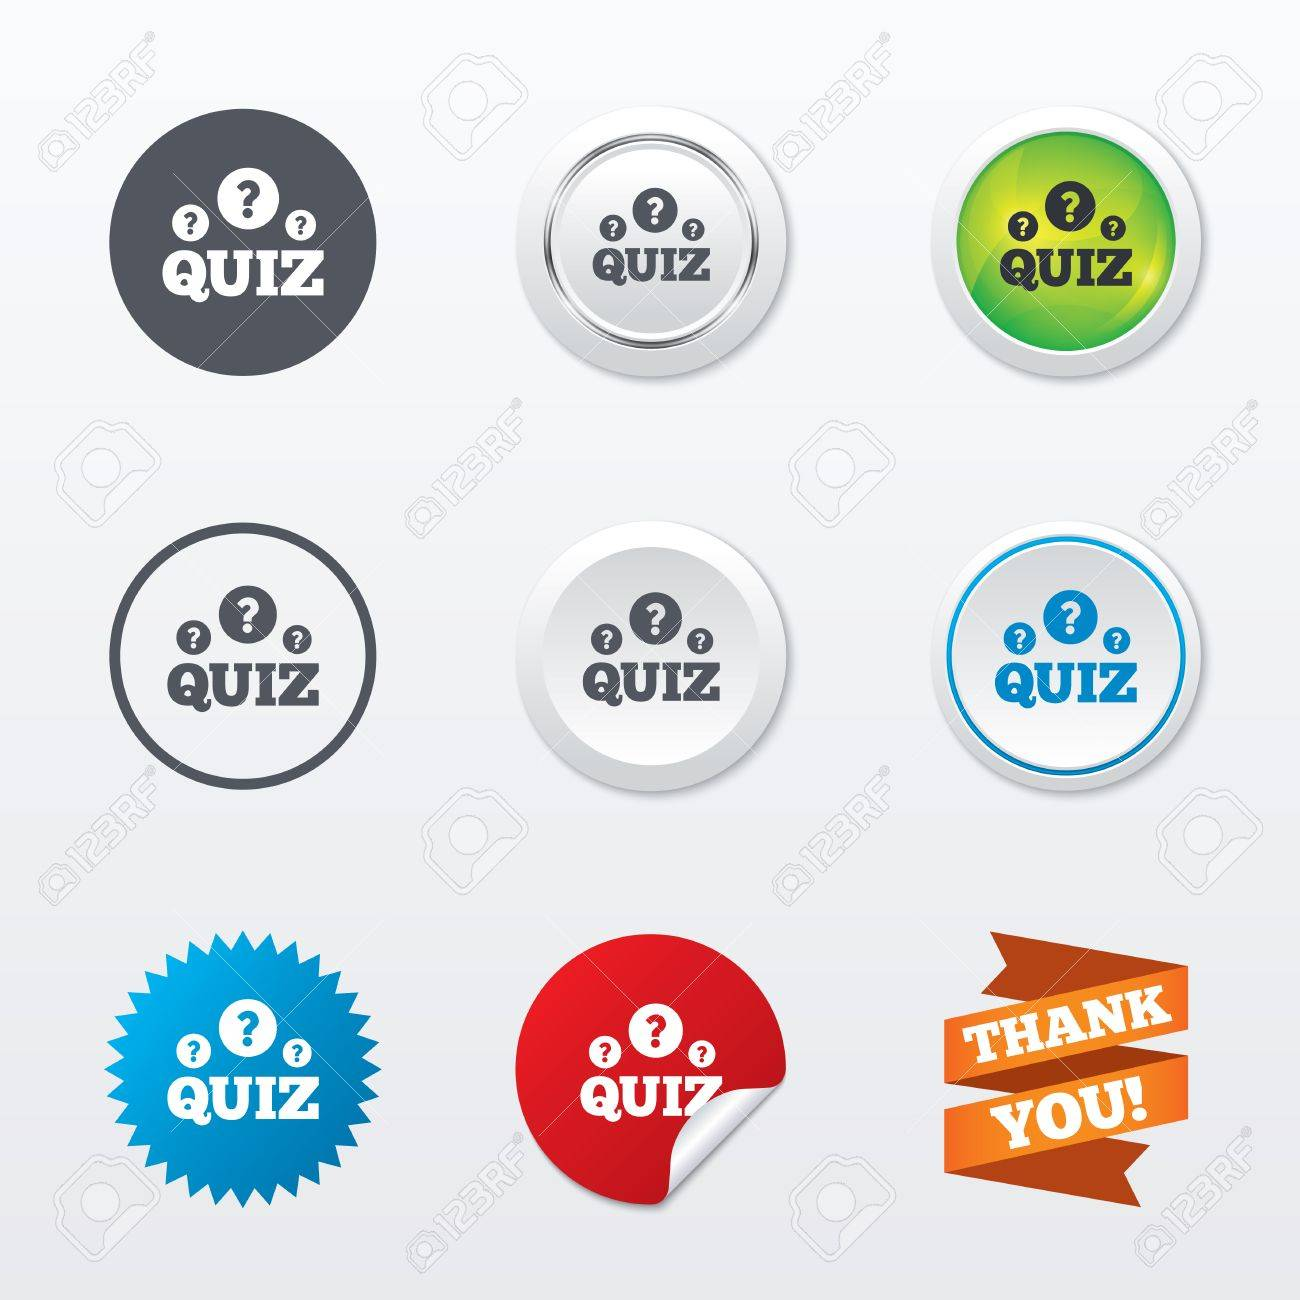 quiz question marks sign icon questions and answers game quiz question marks sign icon questions and answers game symbol circle concept buttons